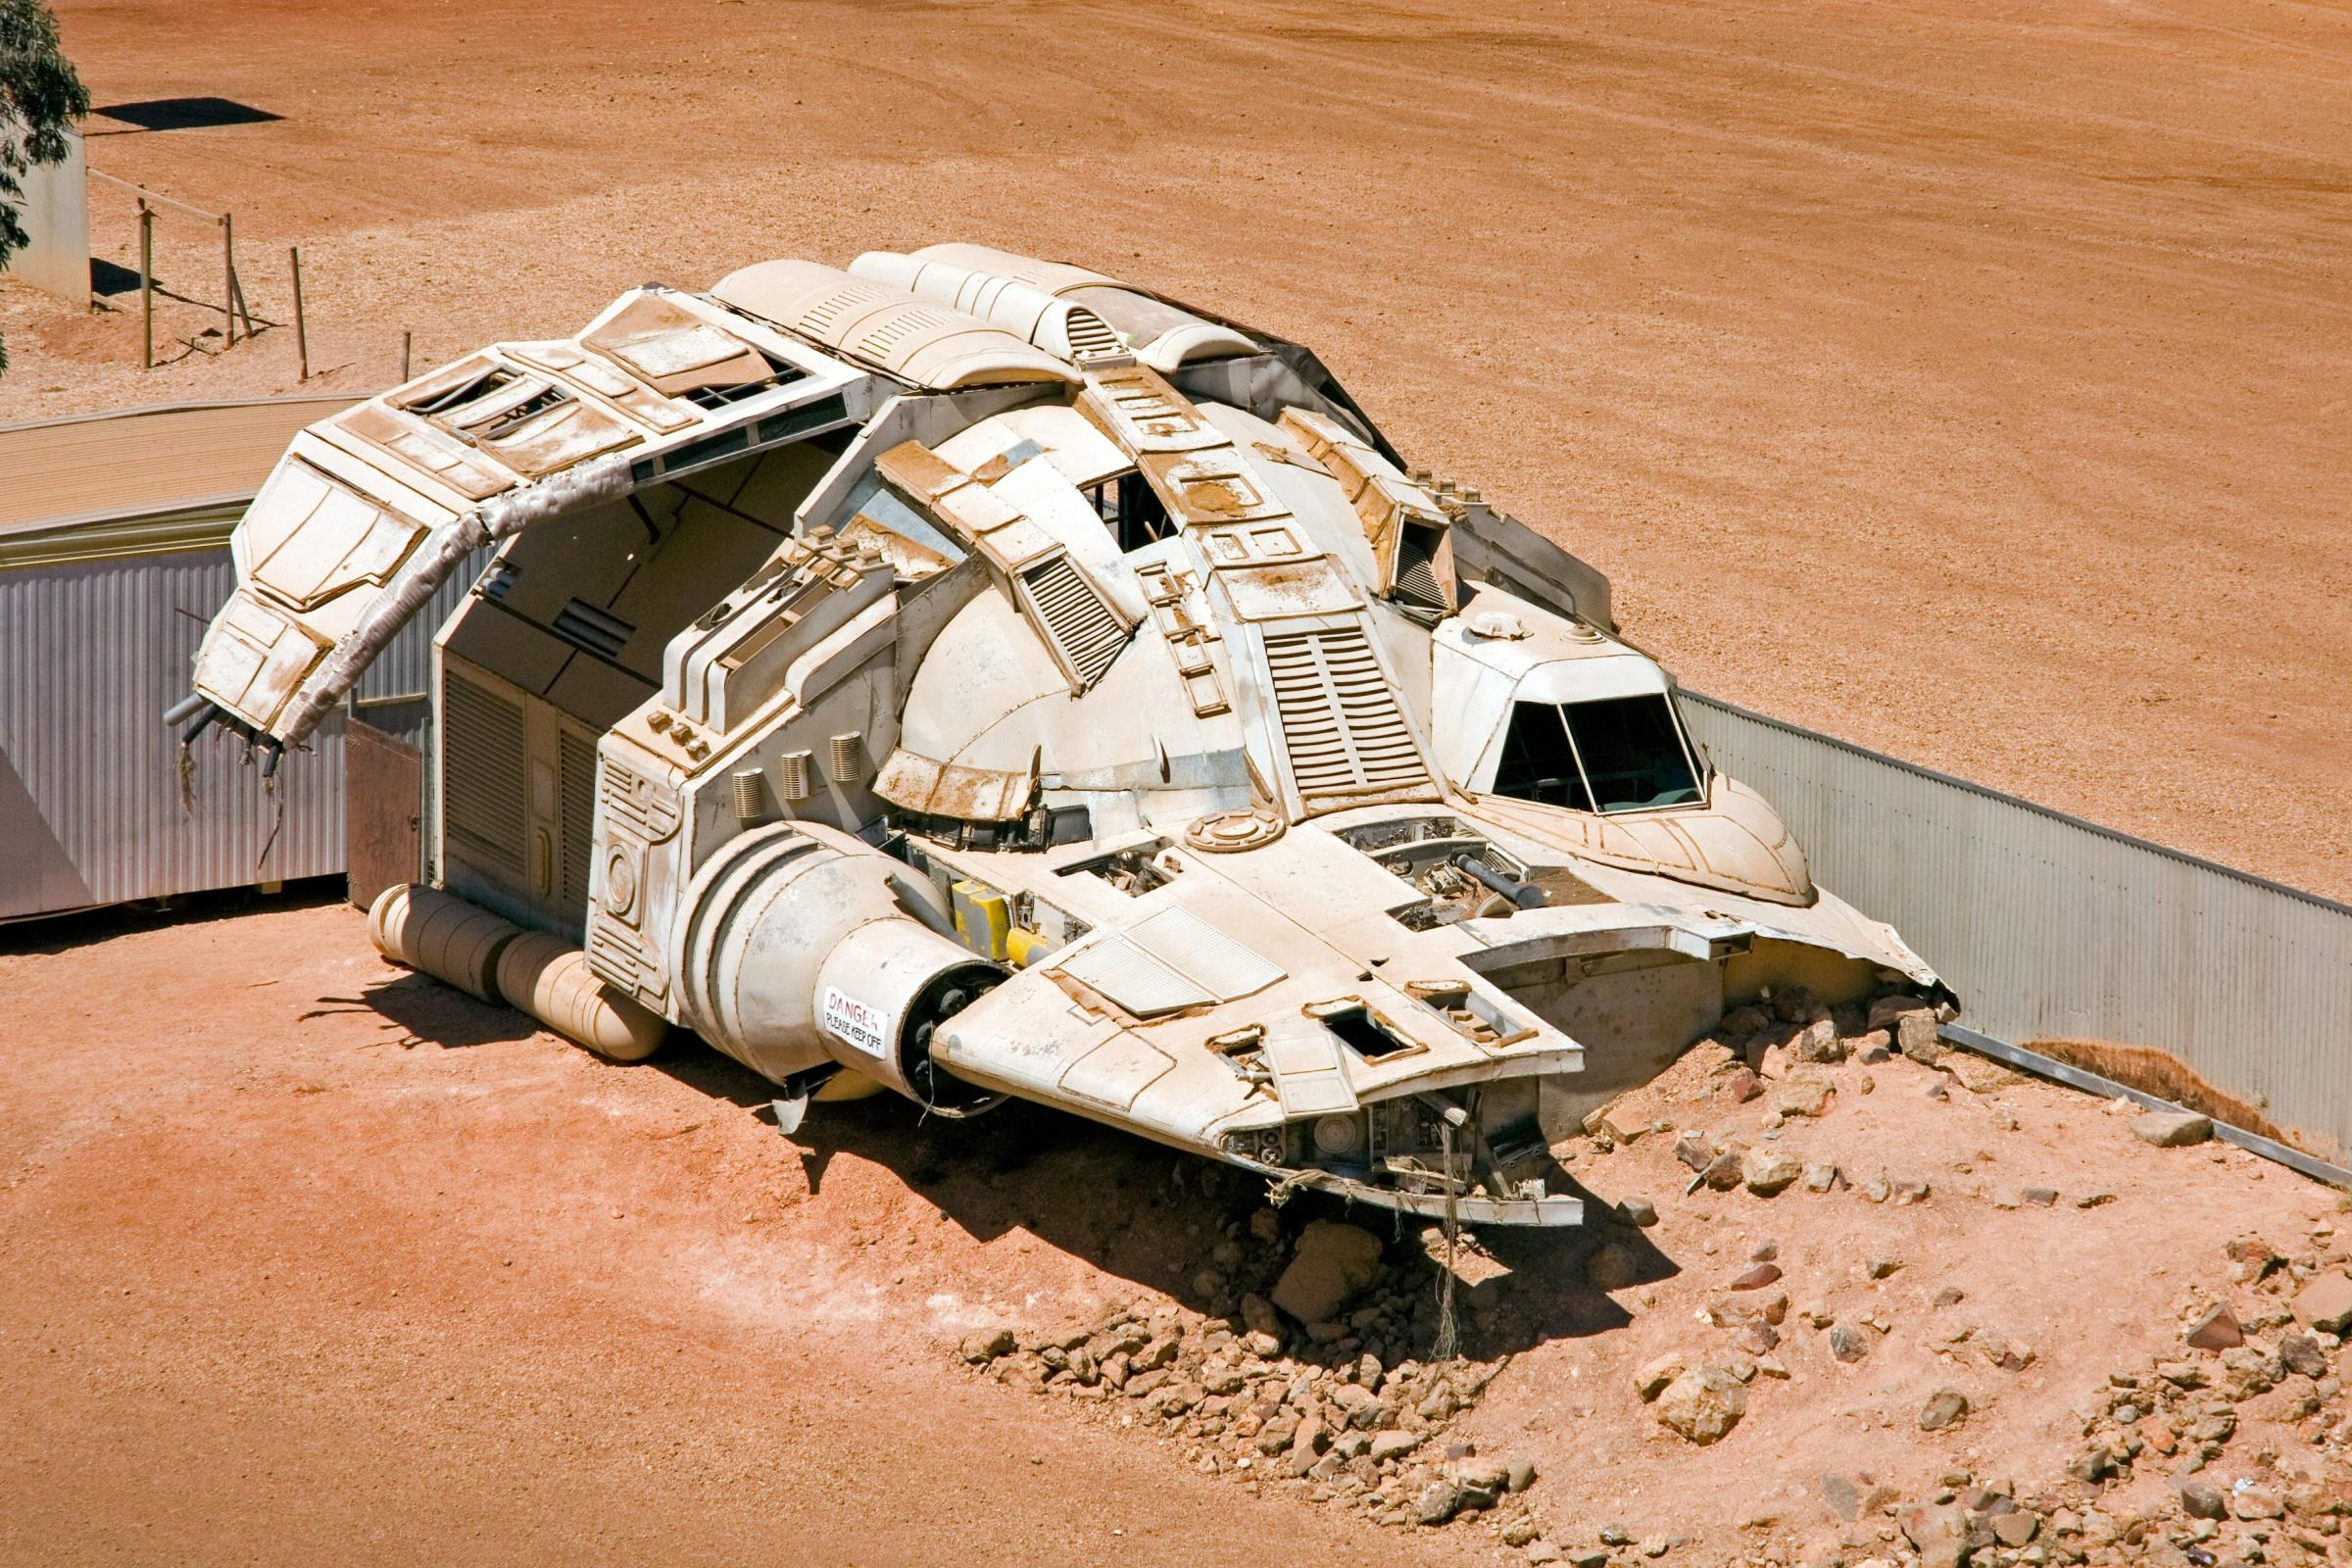 Star Wars props now sell for thousands of pounds. Photo: Pixabay